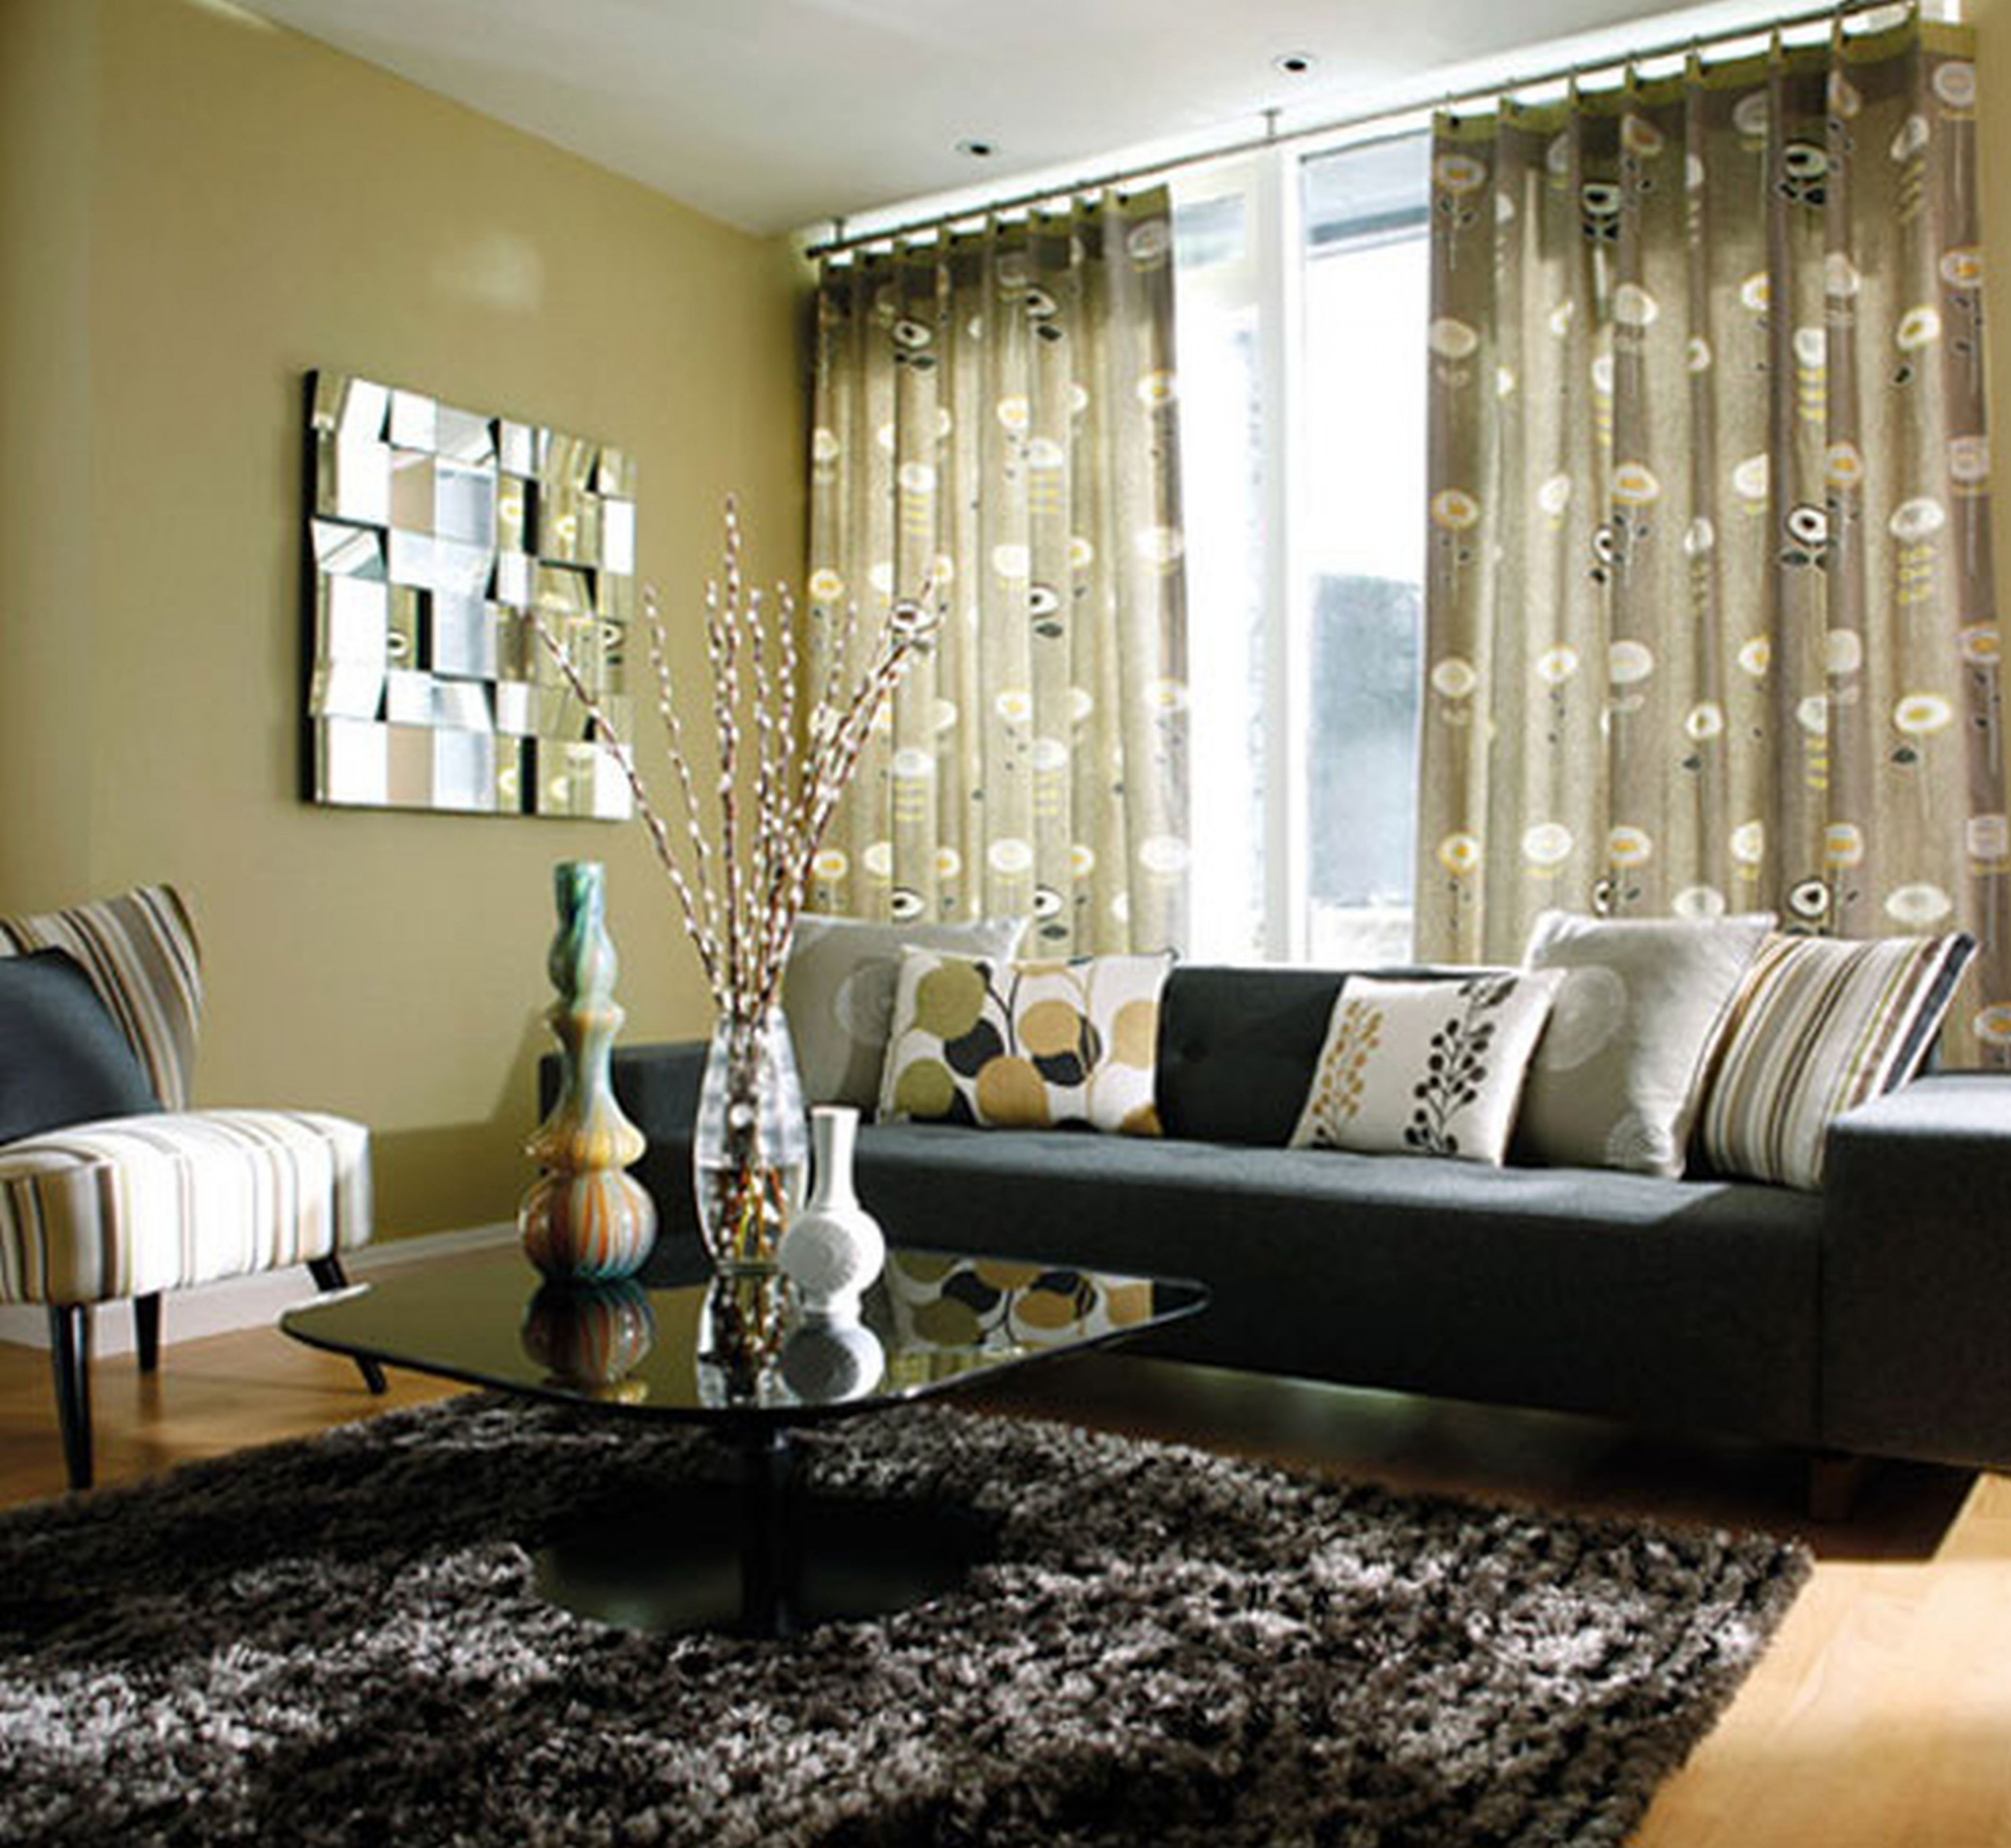 Living Room Decorating Ideas With Black, Living Room Decorating Ideas With Black Leather Furniture